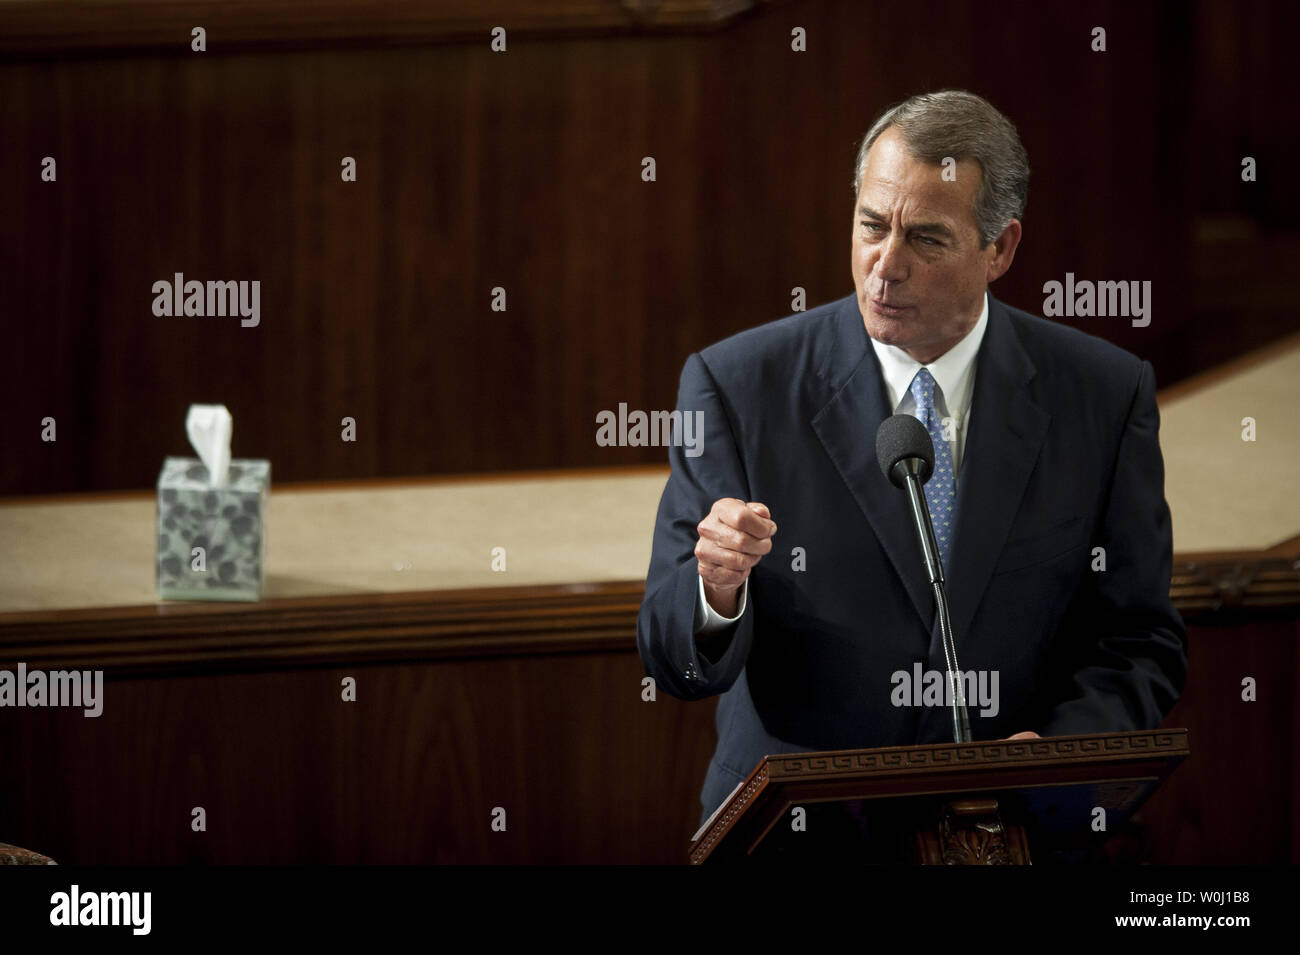 The day before he is to retire from Congress, Speaker of the House John Boehner (R-OH) delivers his farewell address to the House of Representatives on October 29, 2015 in Washington, D.C. Following his address, the House of Representatives will vote on Boehner's replacement for Speaker. Photo by Pete Marovich/UPI - Stock Image